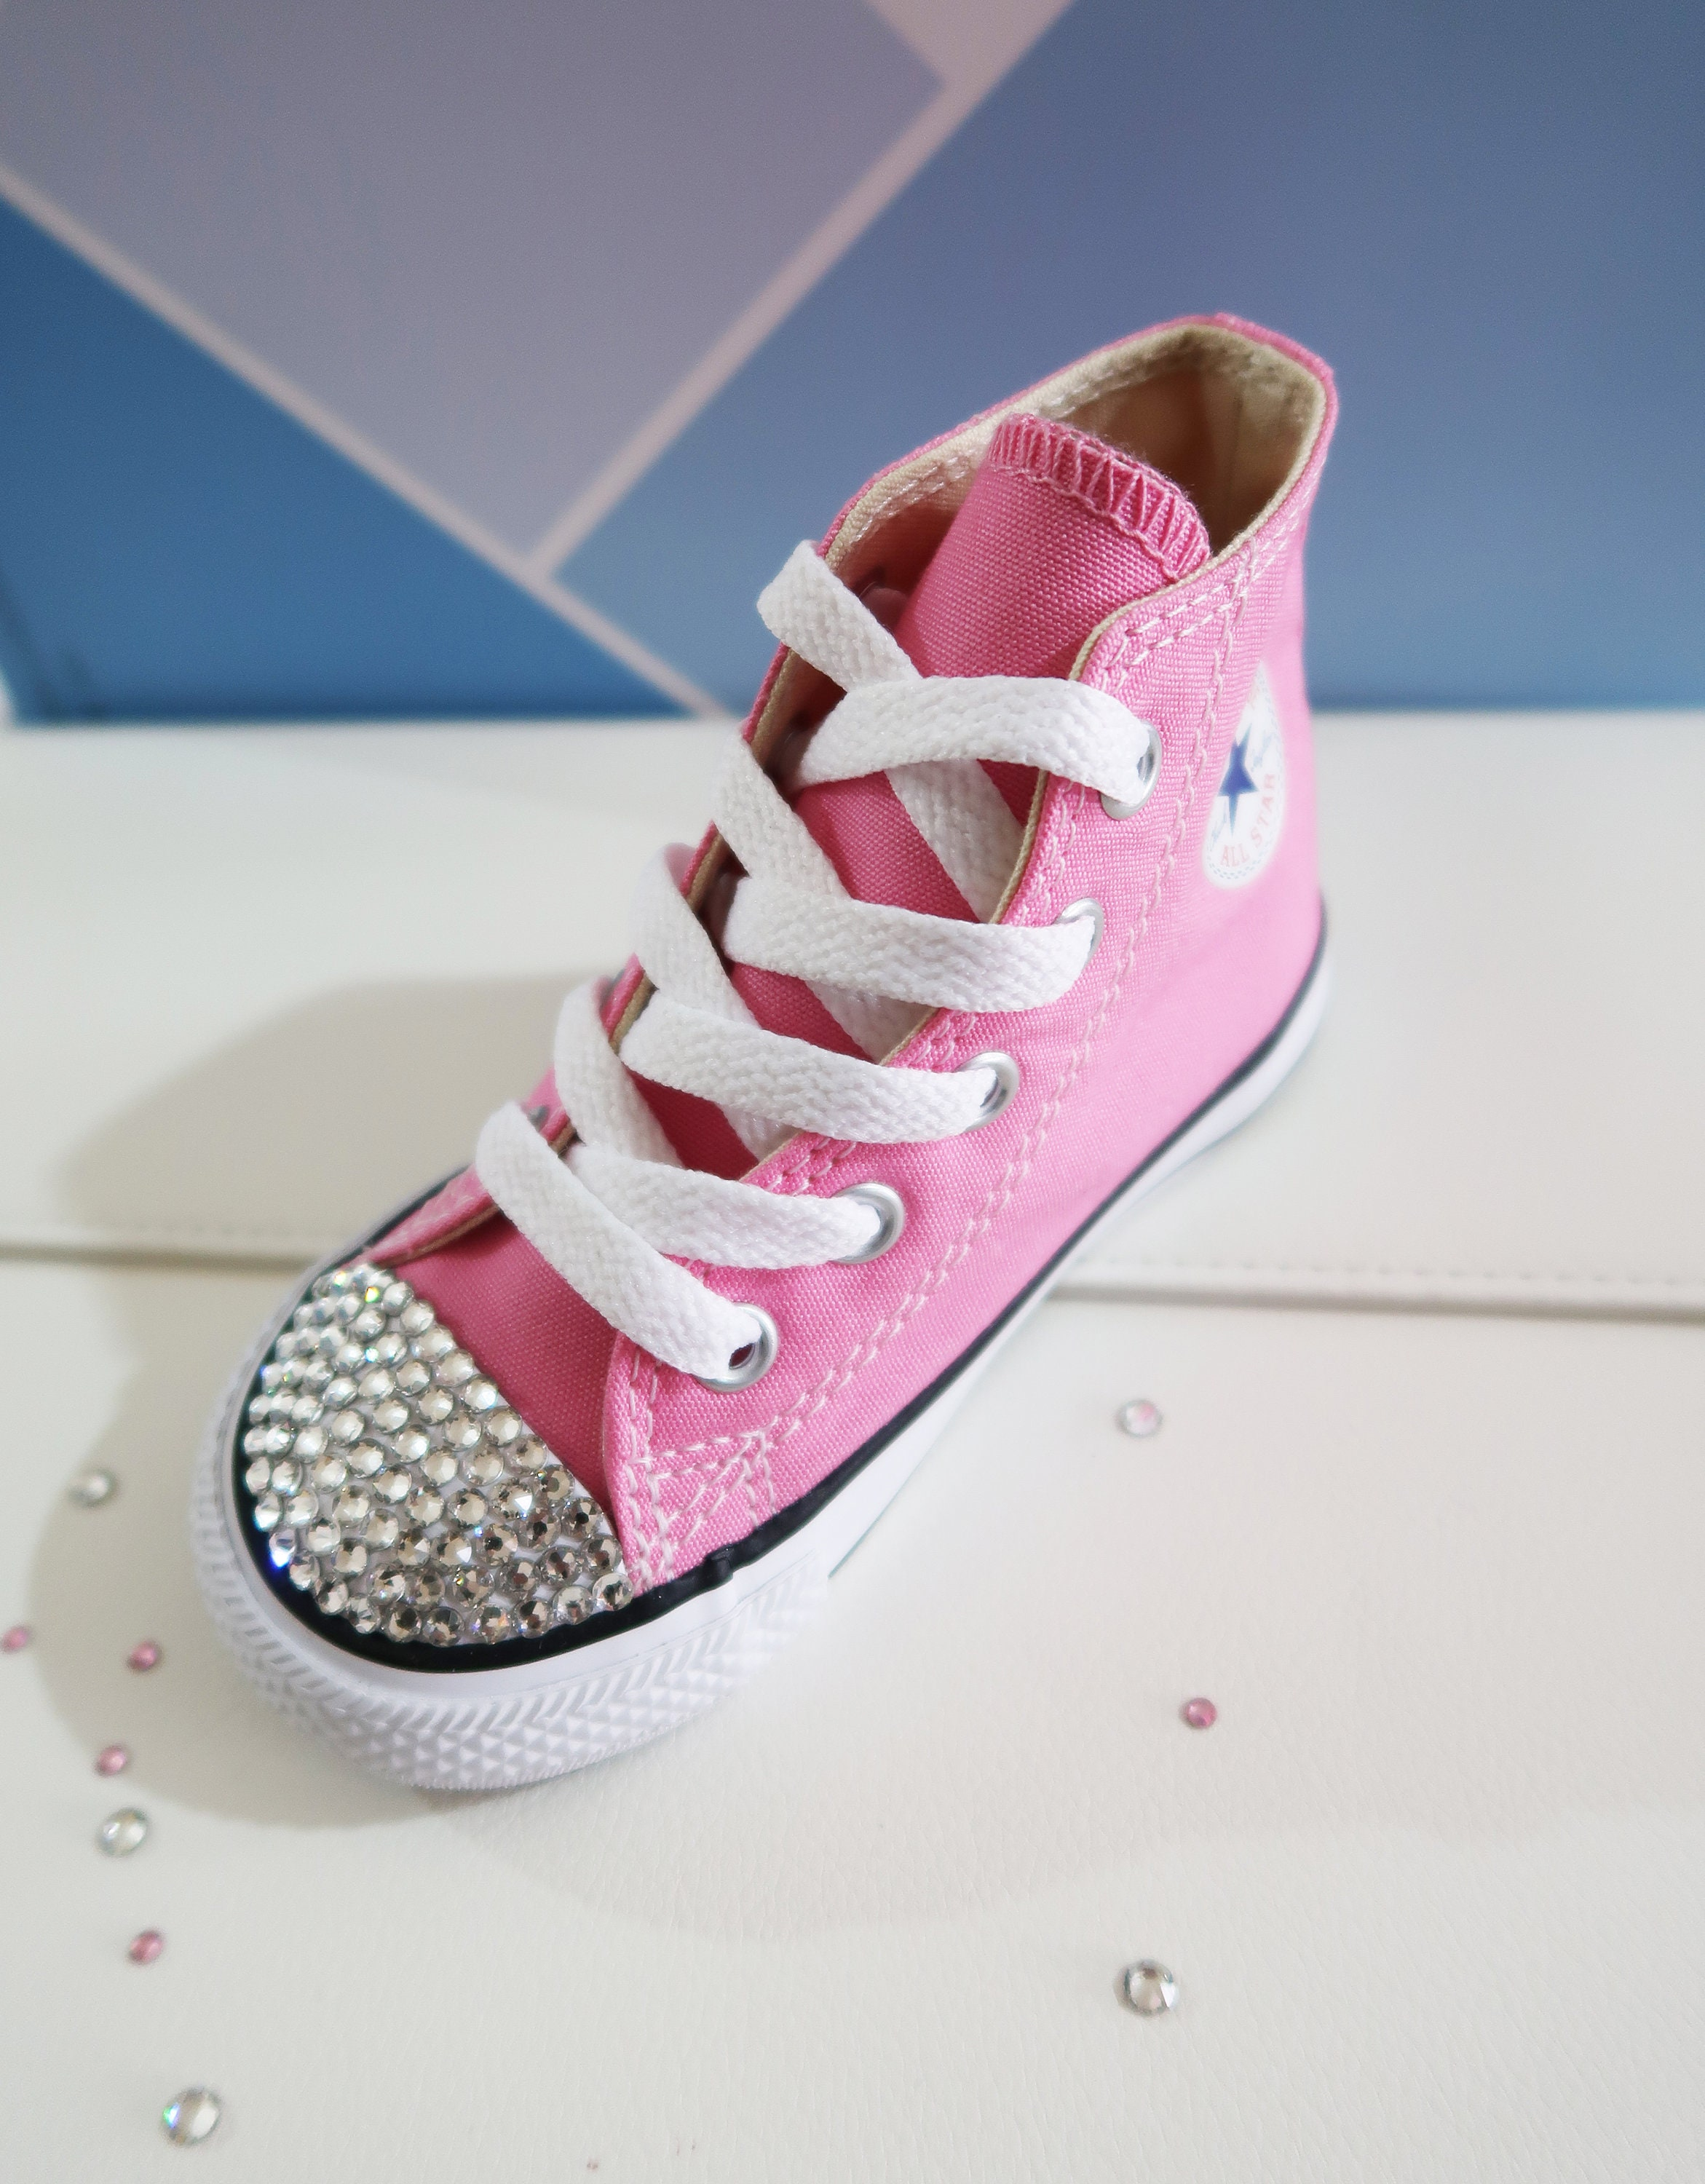 0193e74a40c8 LUXURY Customised Swarovski Crystal Converse® Chuck Taylor All Star High  Top Infant Toddler Shoe Embellished With Finest Swarovski Crystals